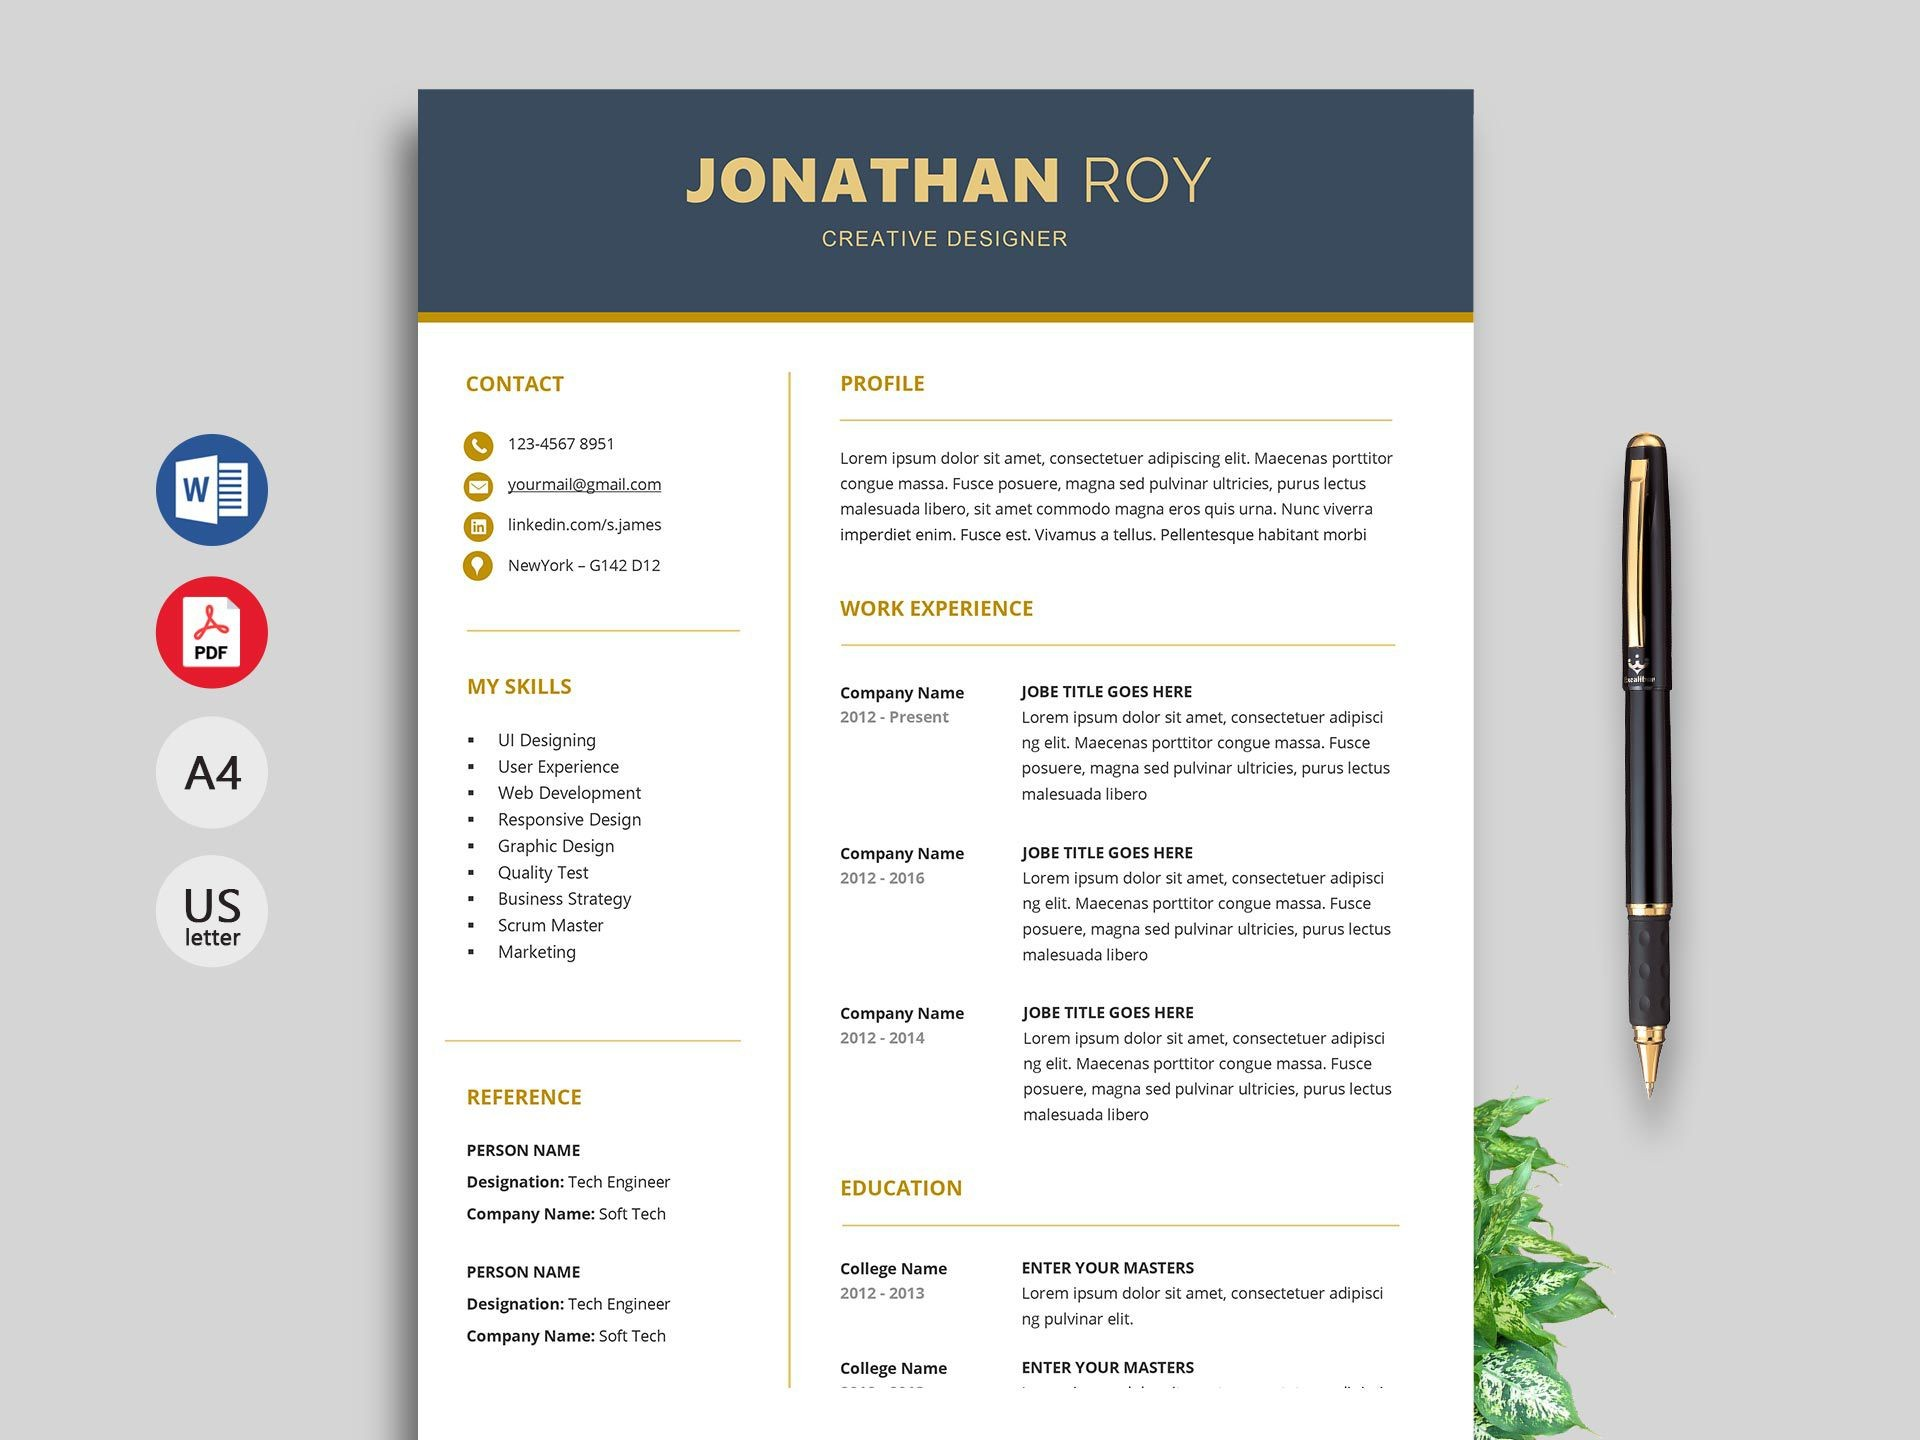 005 Frightening Curriculum Vitae Word Template Design  Templates Download M 2019 Cv Free1920